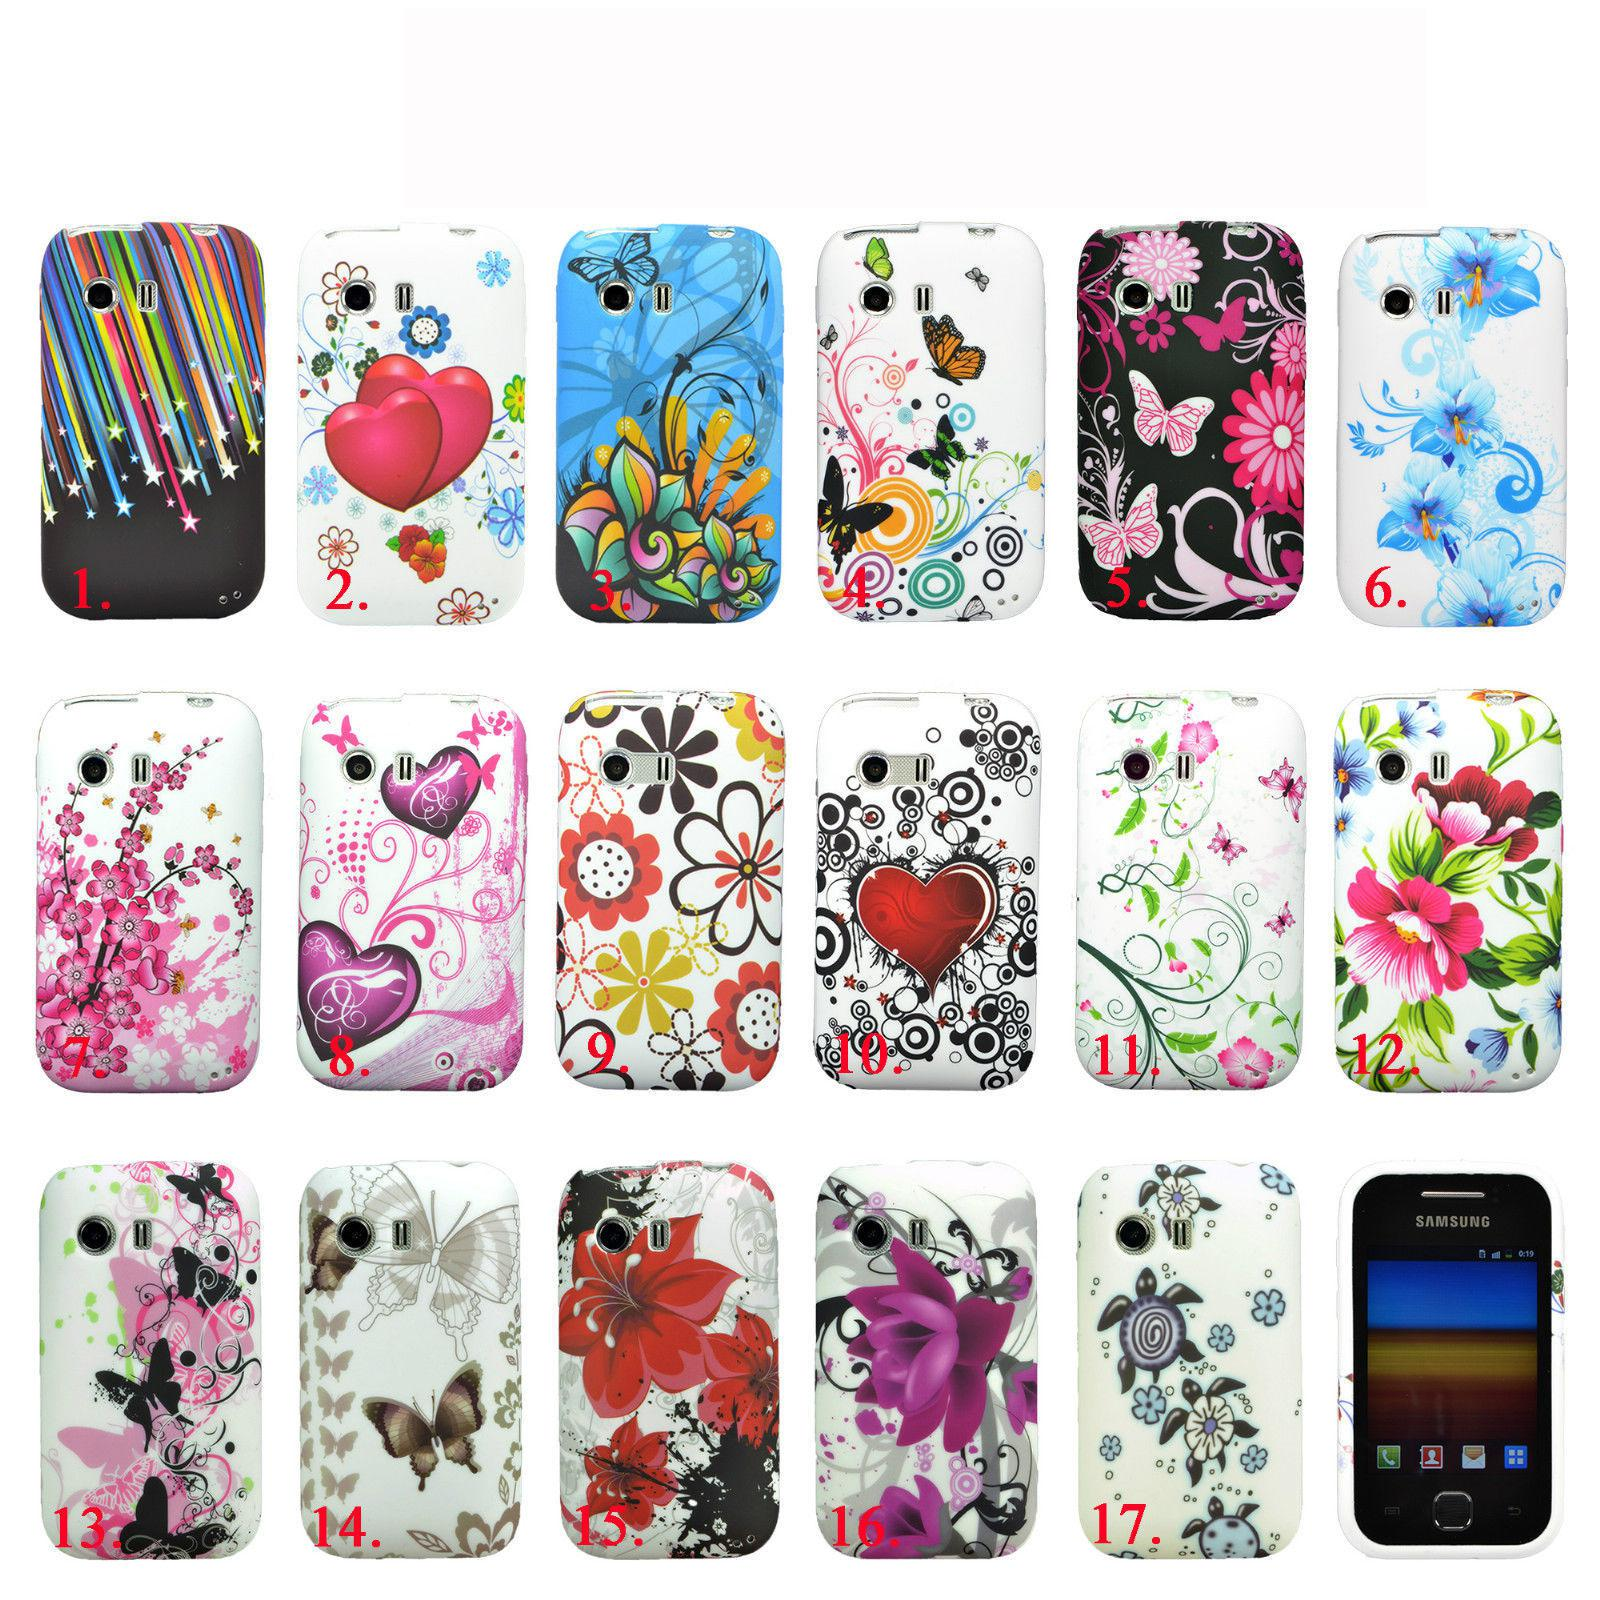 huawei cell phone cases. cool flower printed soft silicone gel phone case cover for huawei ascend p6 p7 p7mini y530 y300 y330 g510 mobile covers from alinacase, cell cases e